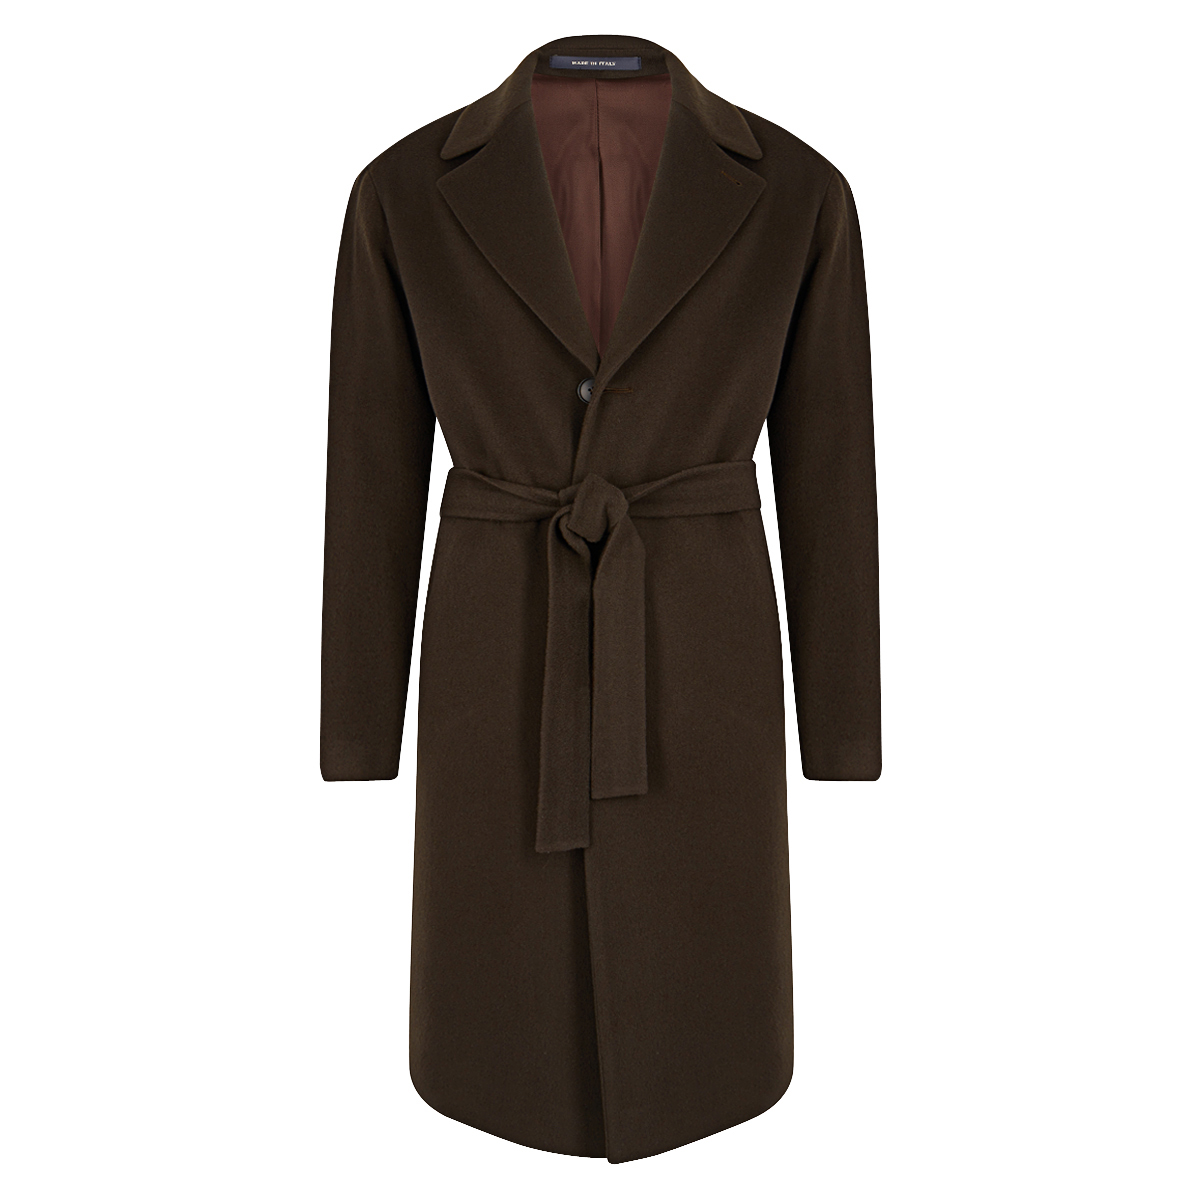 Brown Wool and Cashmere Single Breasted Coat